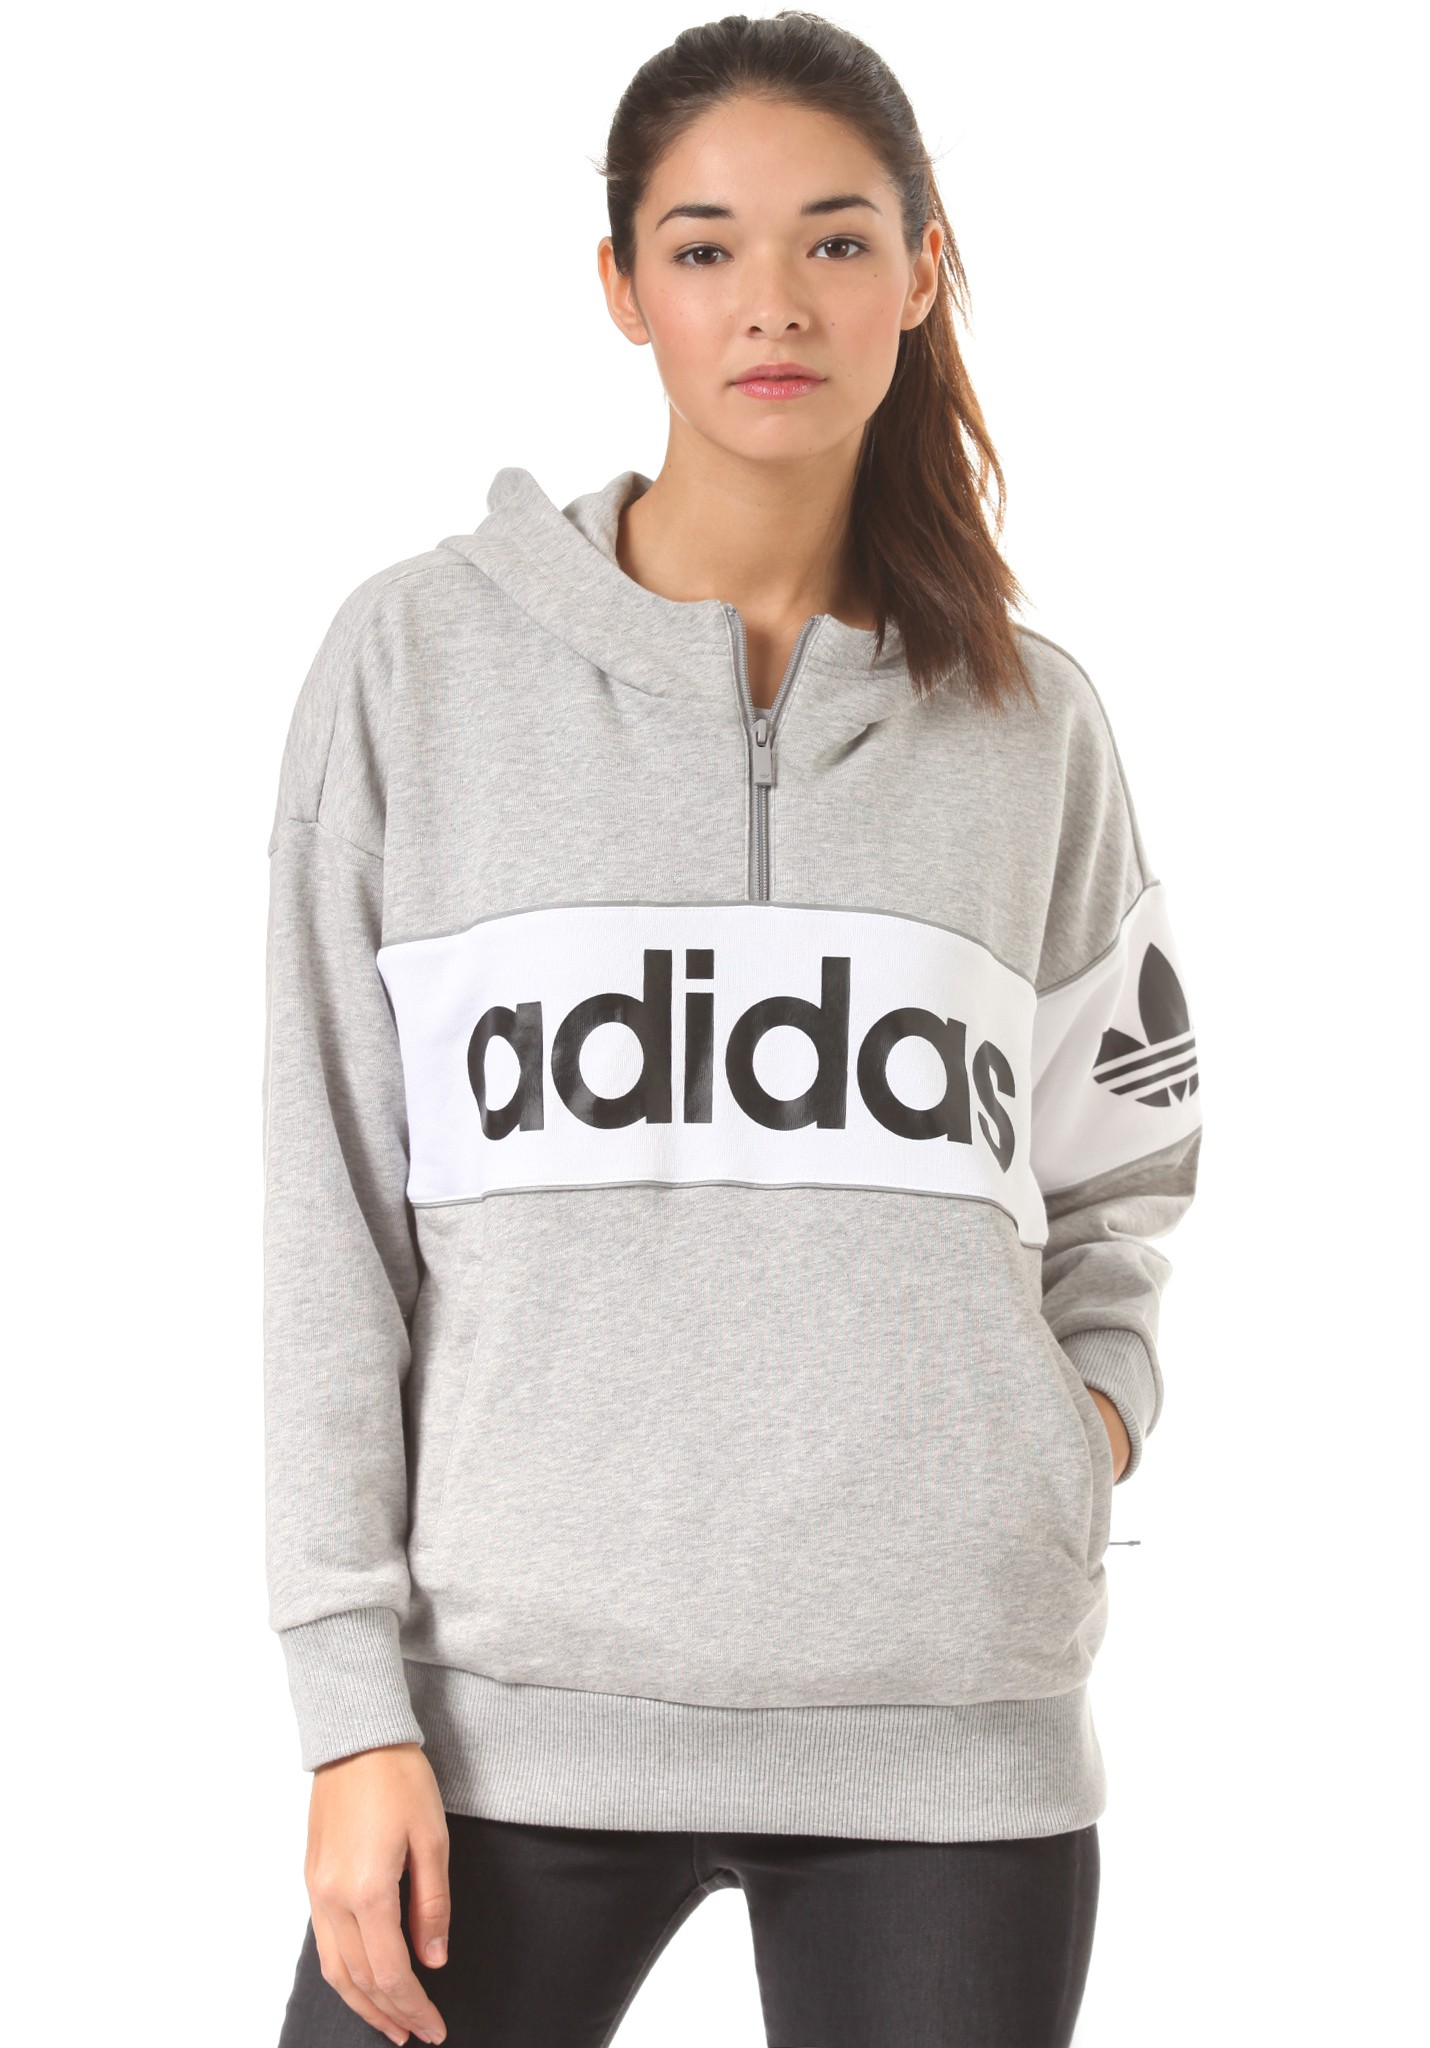 neu adidas city tko sweat damen sweatshirt ebay. Black Bedroom Furniture Sets. Home Design Ideas